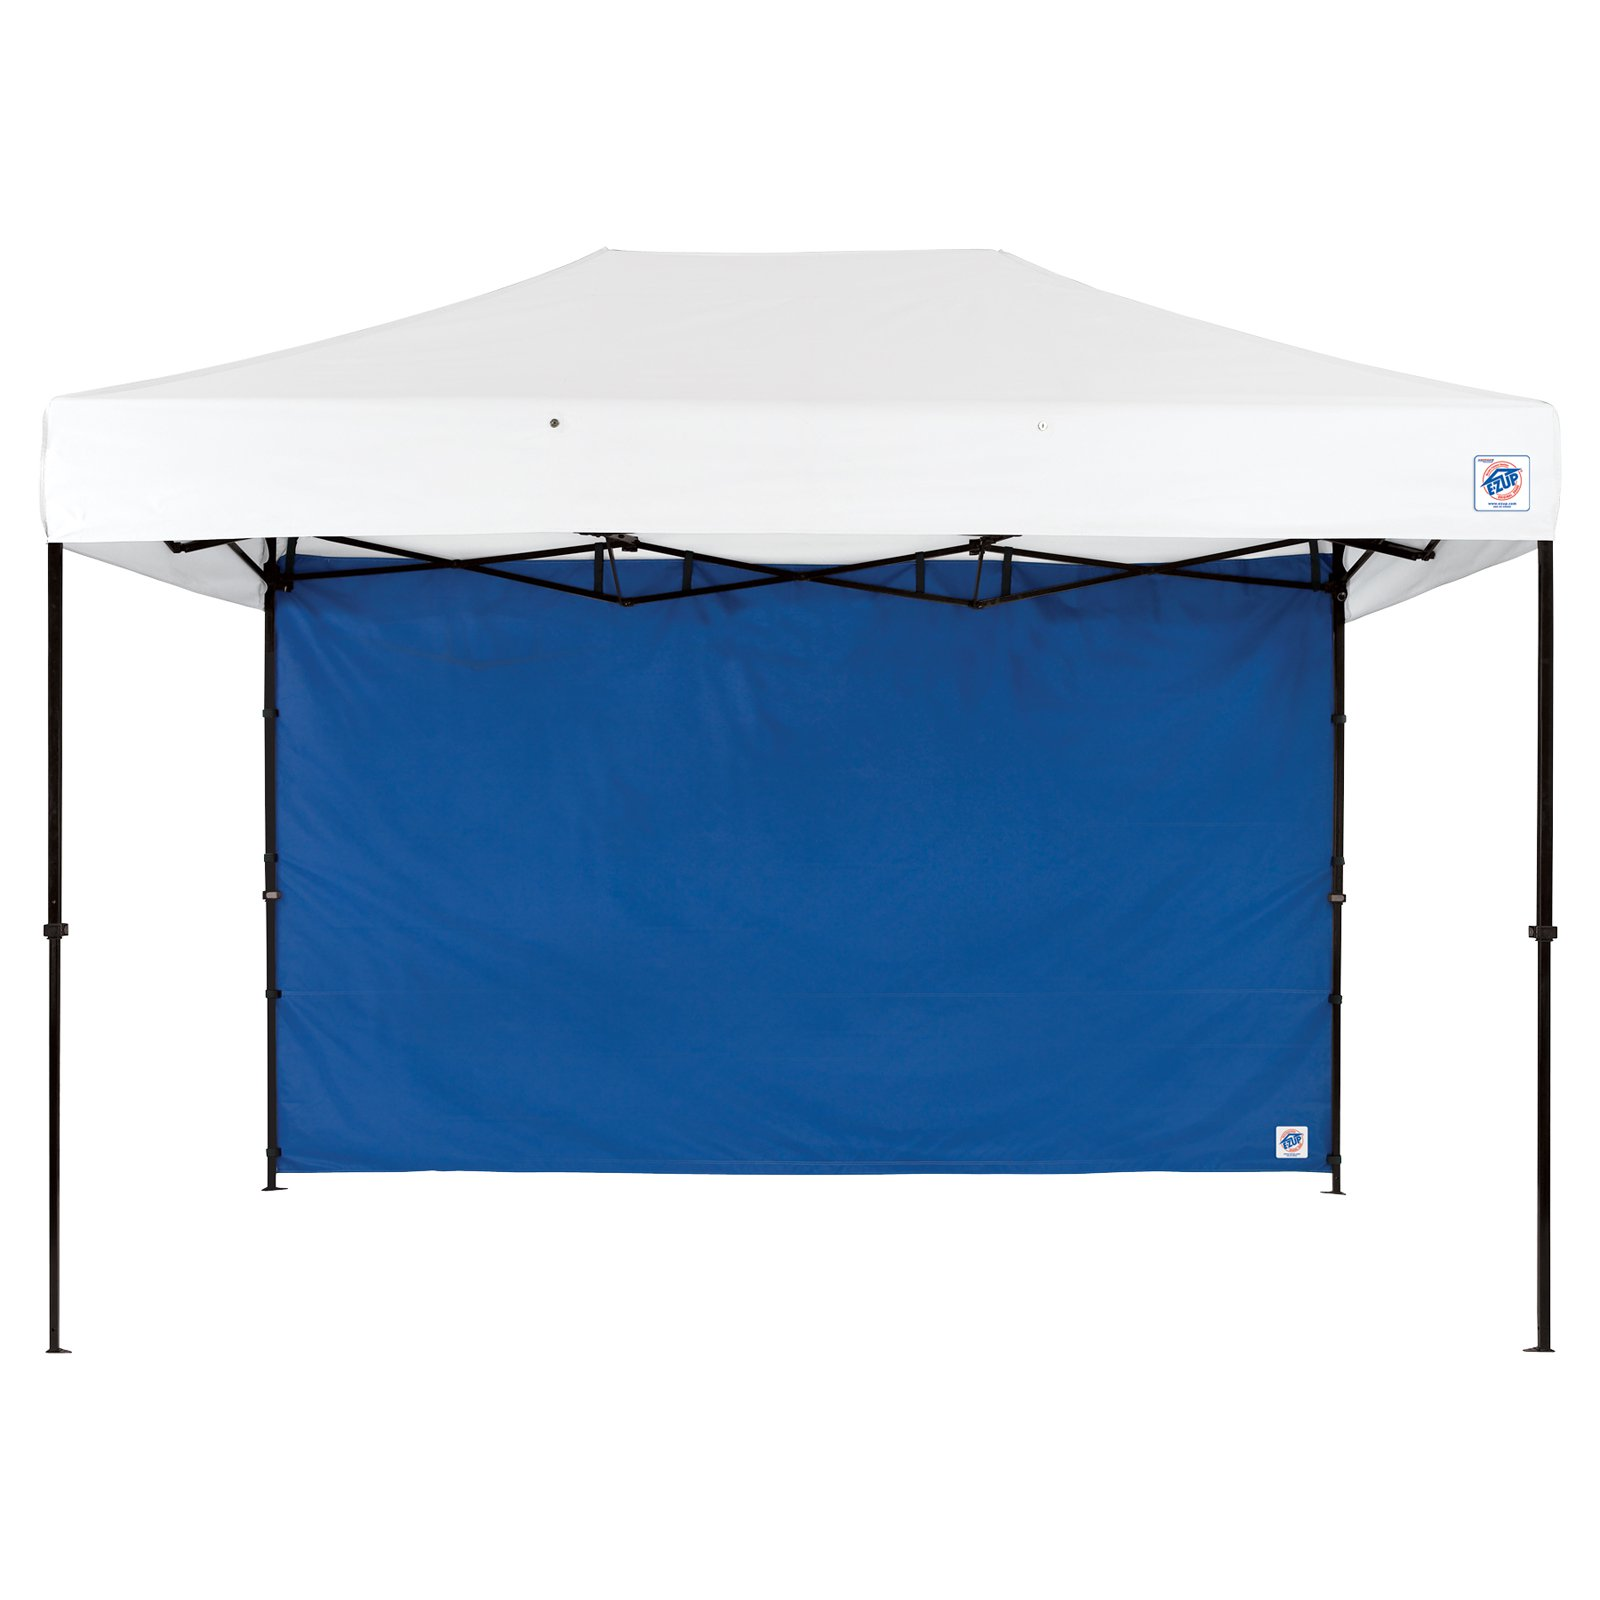 E-Z Up 8x12 Foot Speed Shelter Canopy Sidewall-Blue  sc 1 st  Walmart & E-Z Up 8x12 Foot Speed Shelter Canopy Sidewall-Blue - Walmart.com